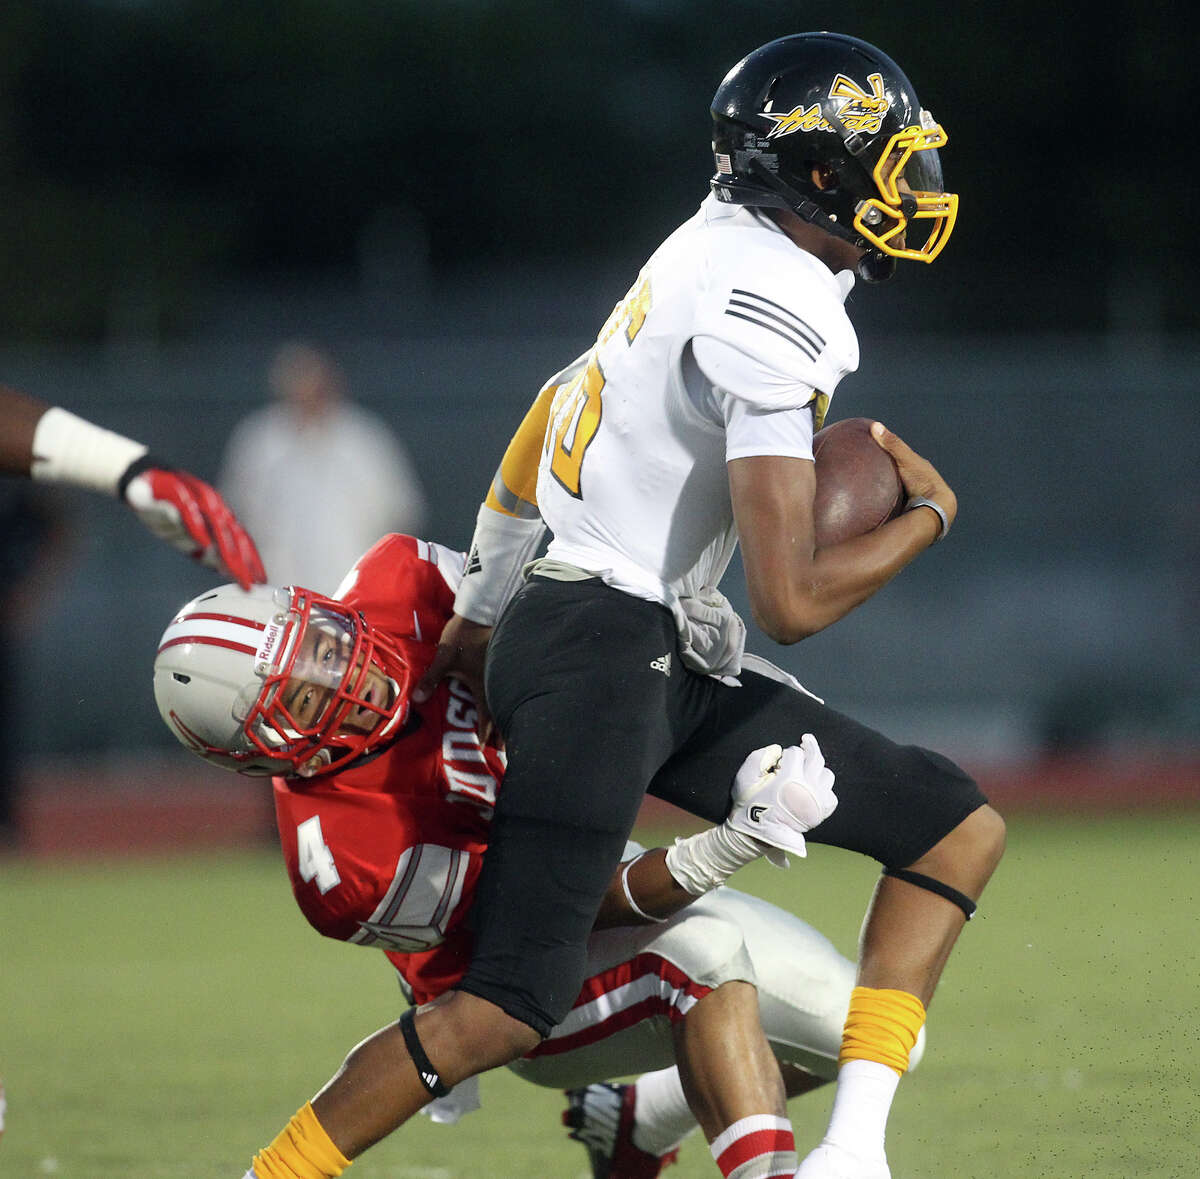 Judson's Malik Pryor (04) attempts to take down East Central quarterback Jeremy Jones (16) during their game at D.W. Rutledge Stadium on Friday, Sept. 21, 2012.